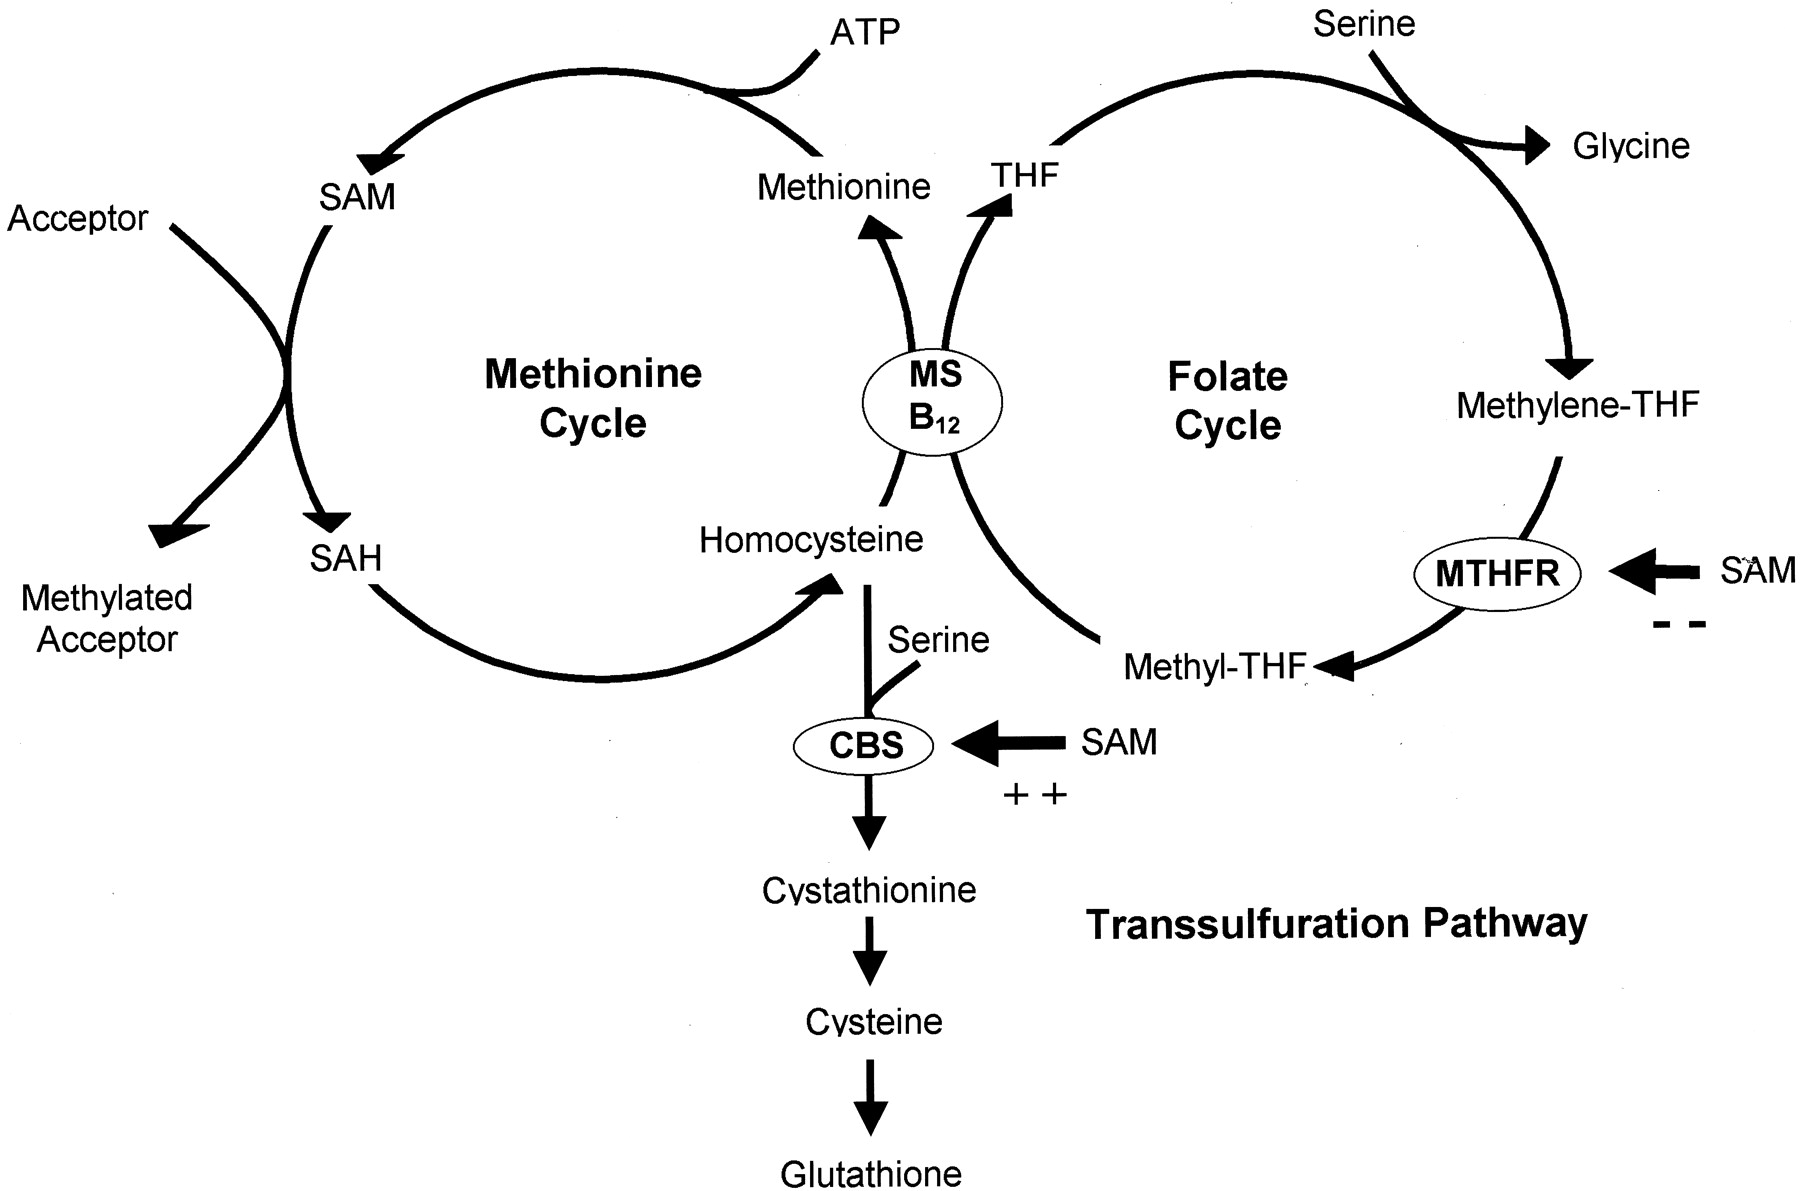 Cycle Vitamin Methionine Cycle Vitamin